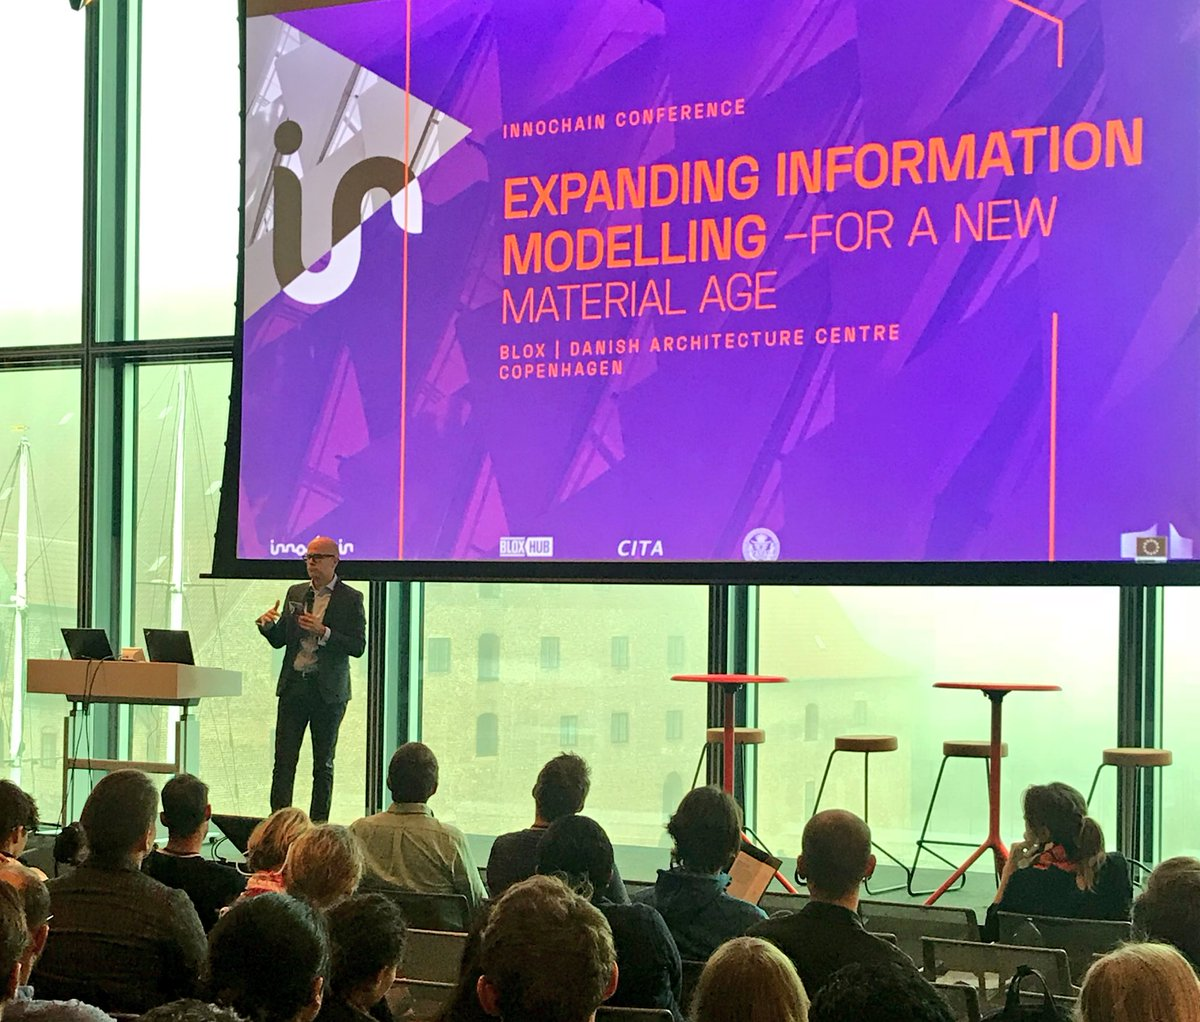 The @inno_chain conference is on! 'Expanding Information Modelling - for a new material age'#cita #kadk